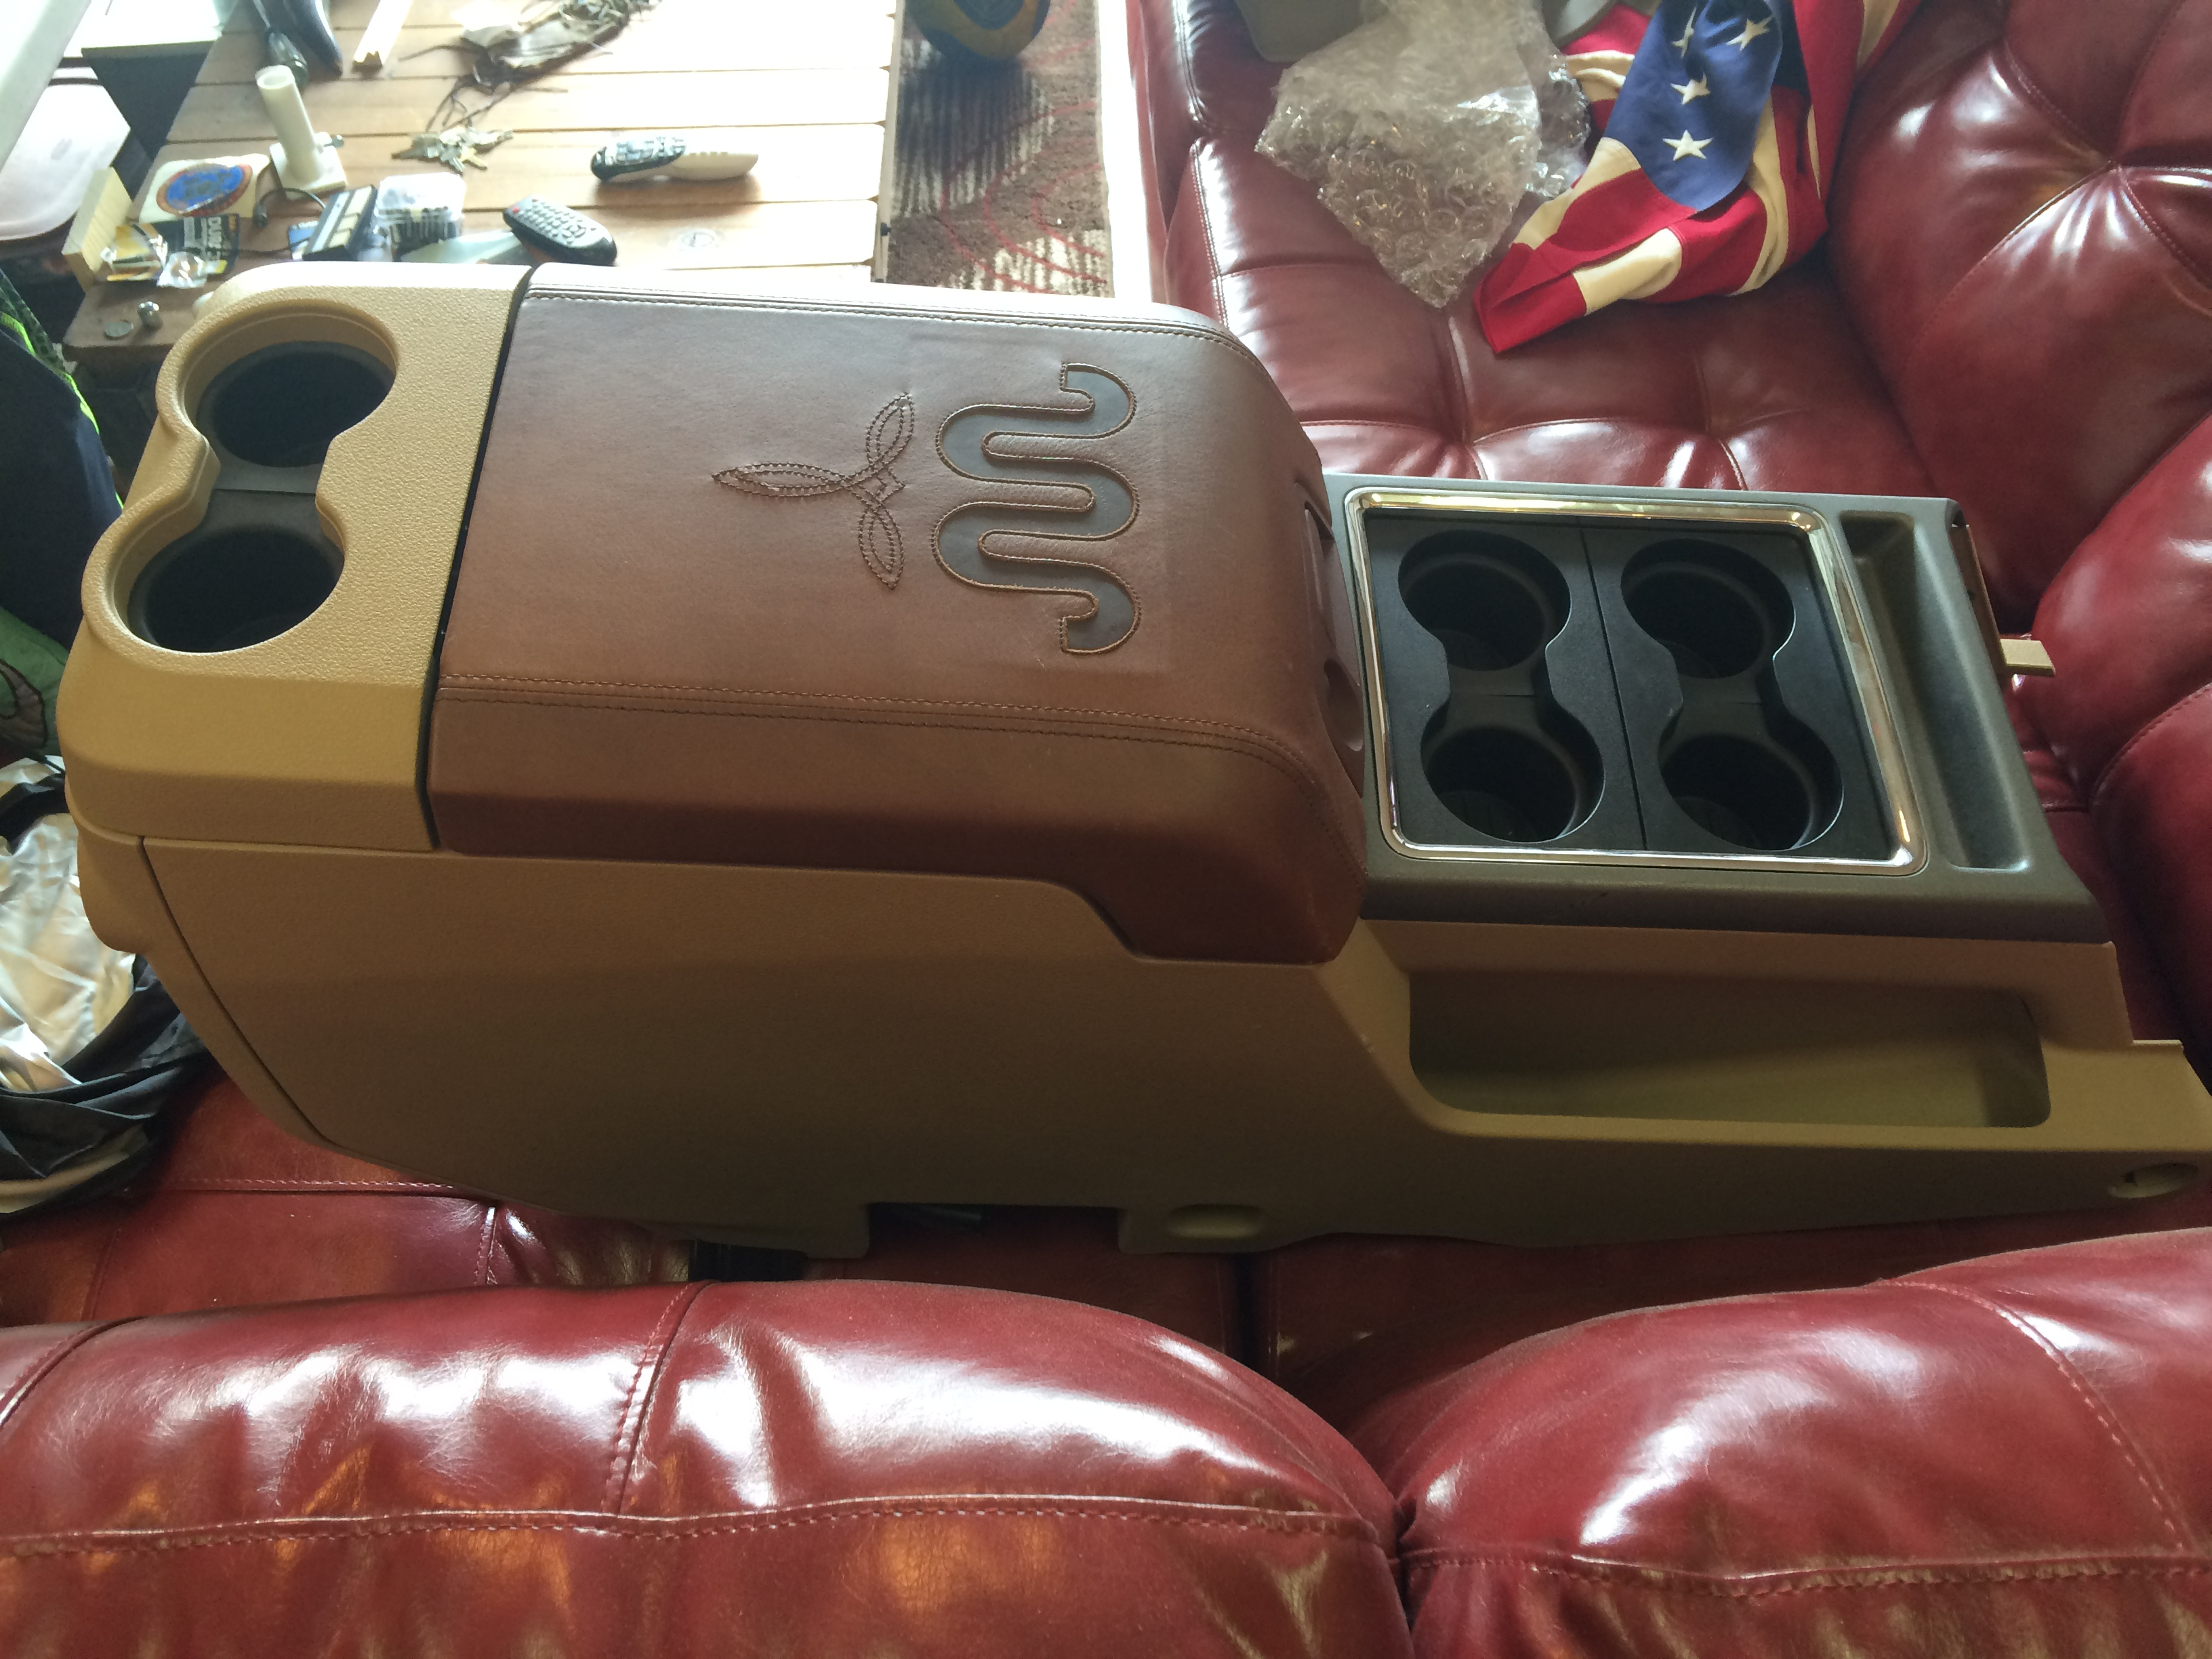 Ford Powerstroke For Sale >> 2011 King Ranch center console for sale - Ford Powerstroke Diesel Forum